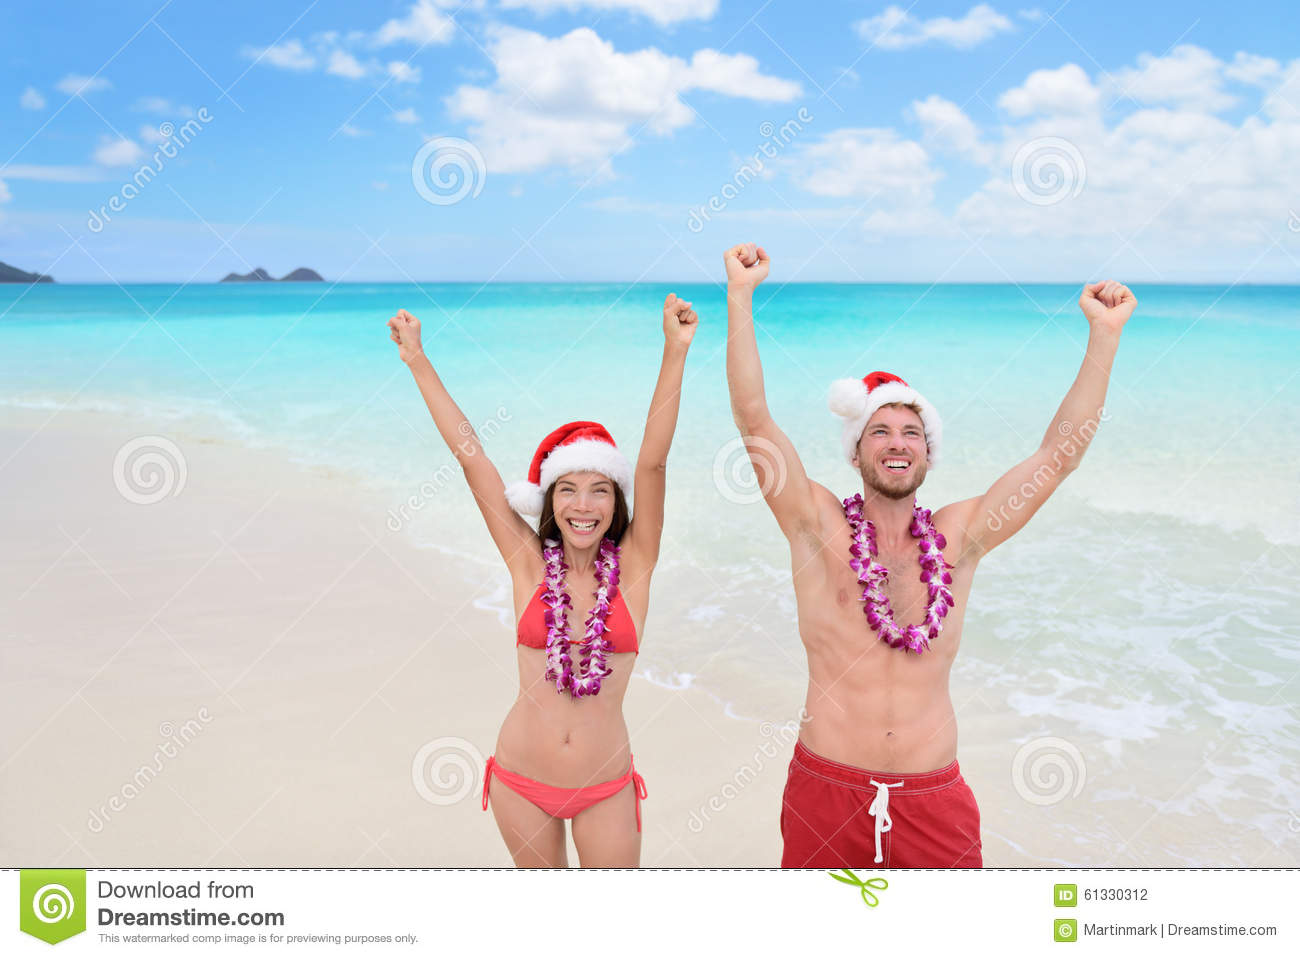 Hawaii Christmas.Happy Christmas Holiday Couple On Hawaii Beach Stock Photo